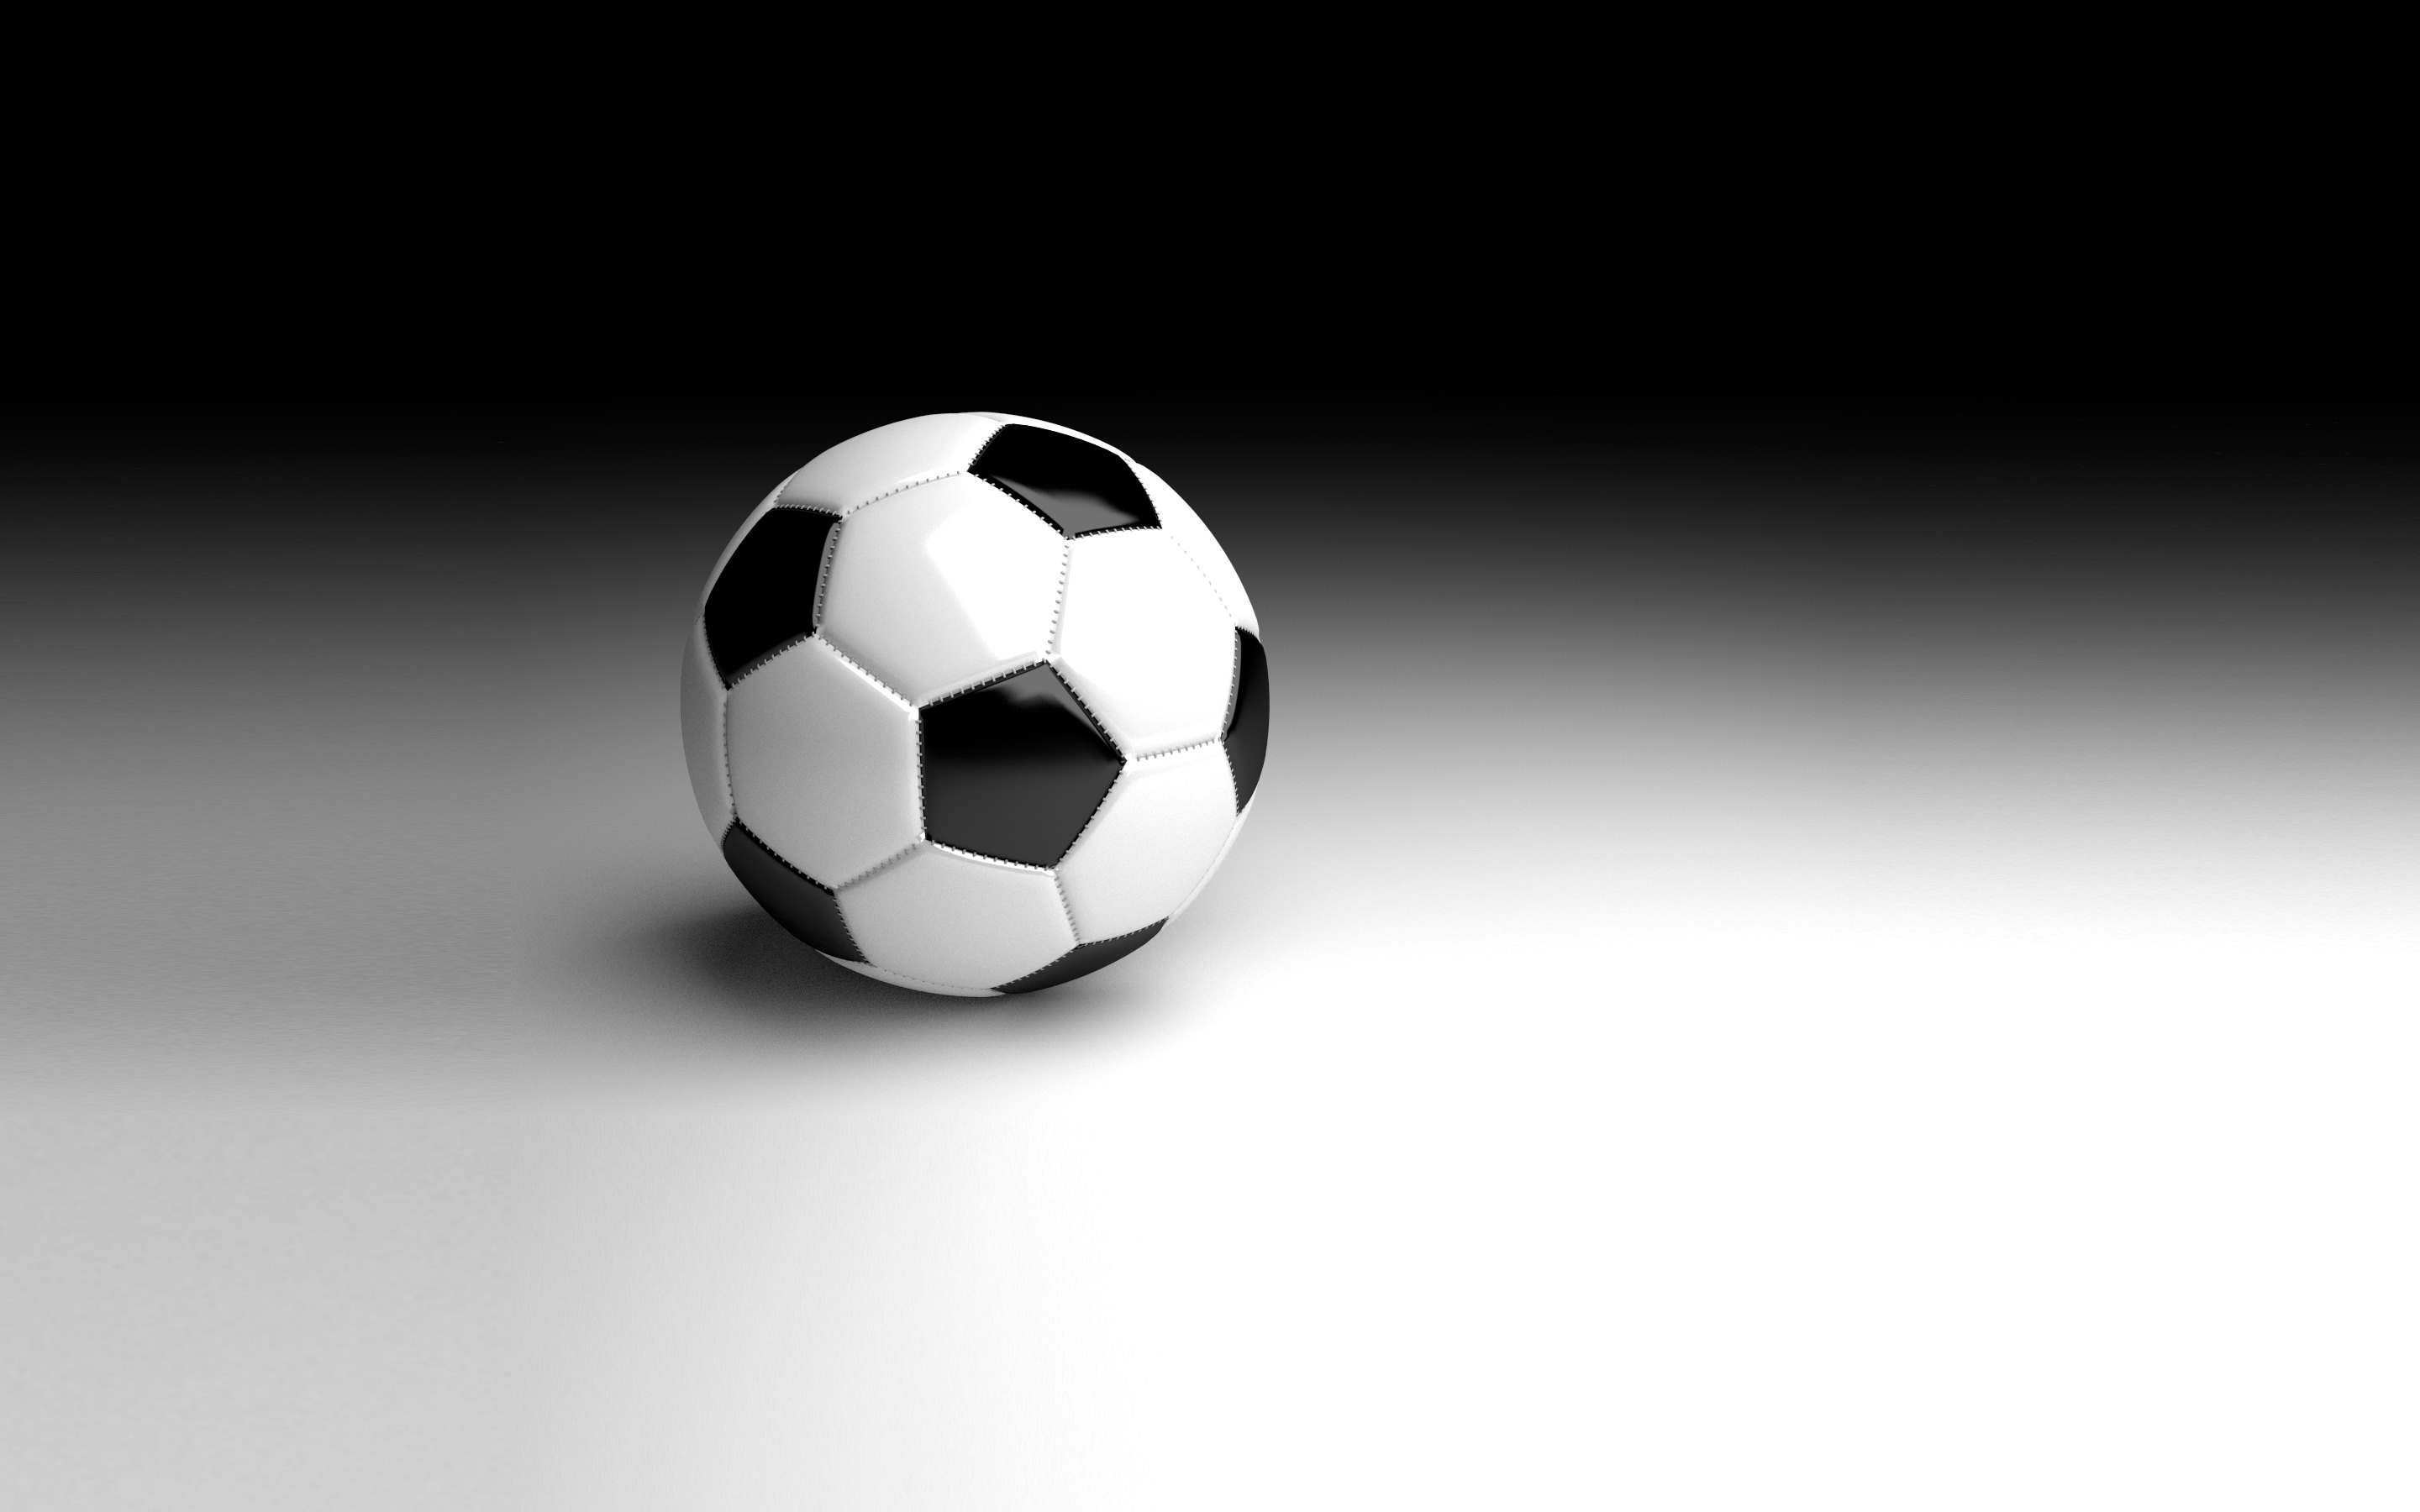 Soccer Ball Wallpaper: DriverLayer Search Engine